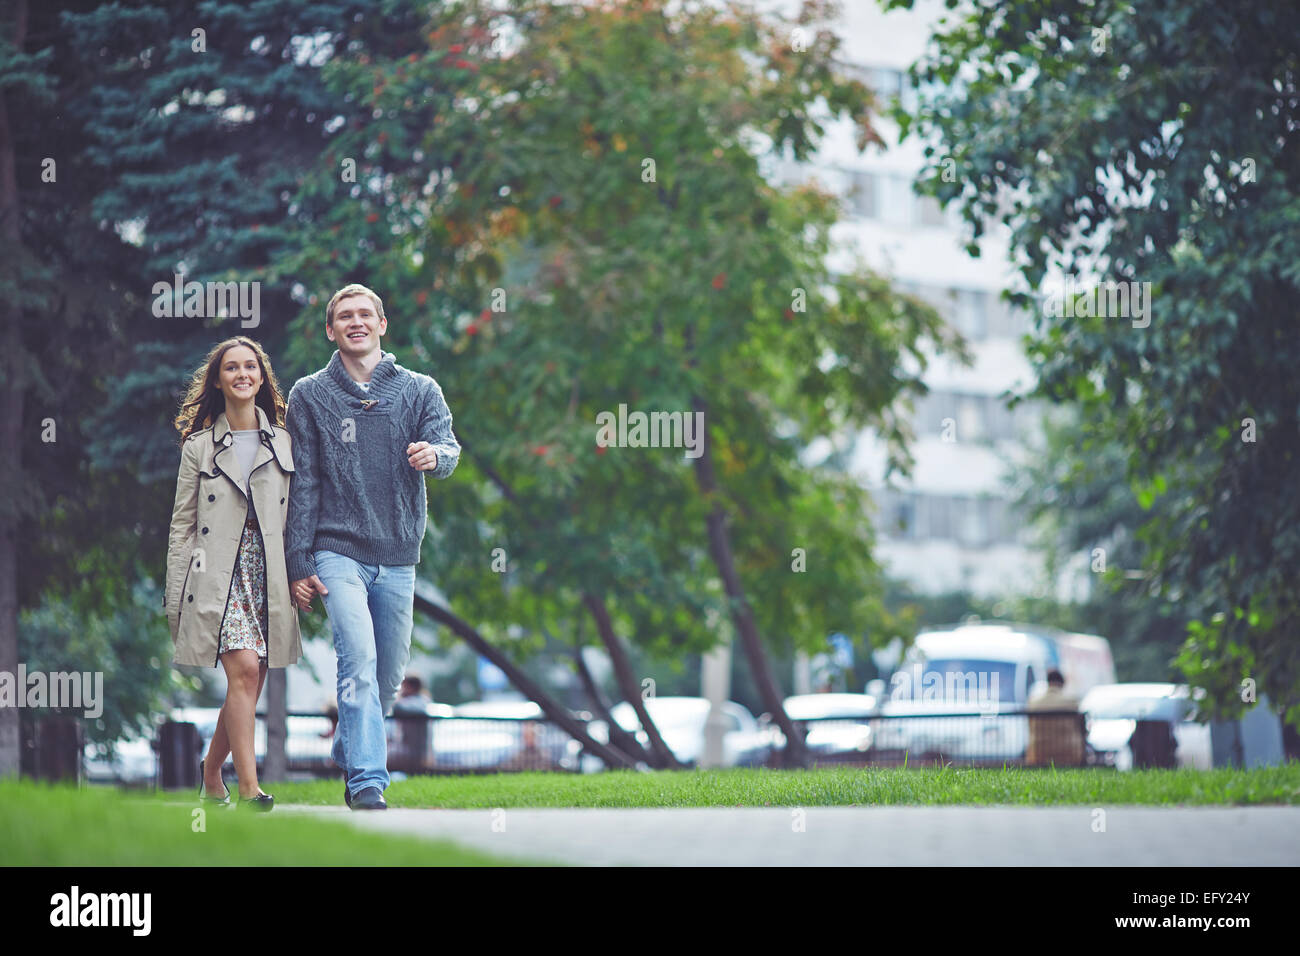 Young dates in casualwear walking in park - Stock Image